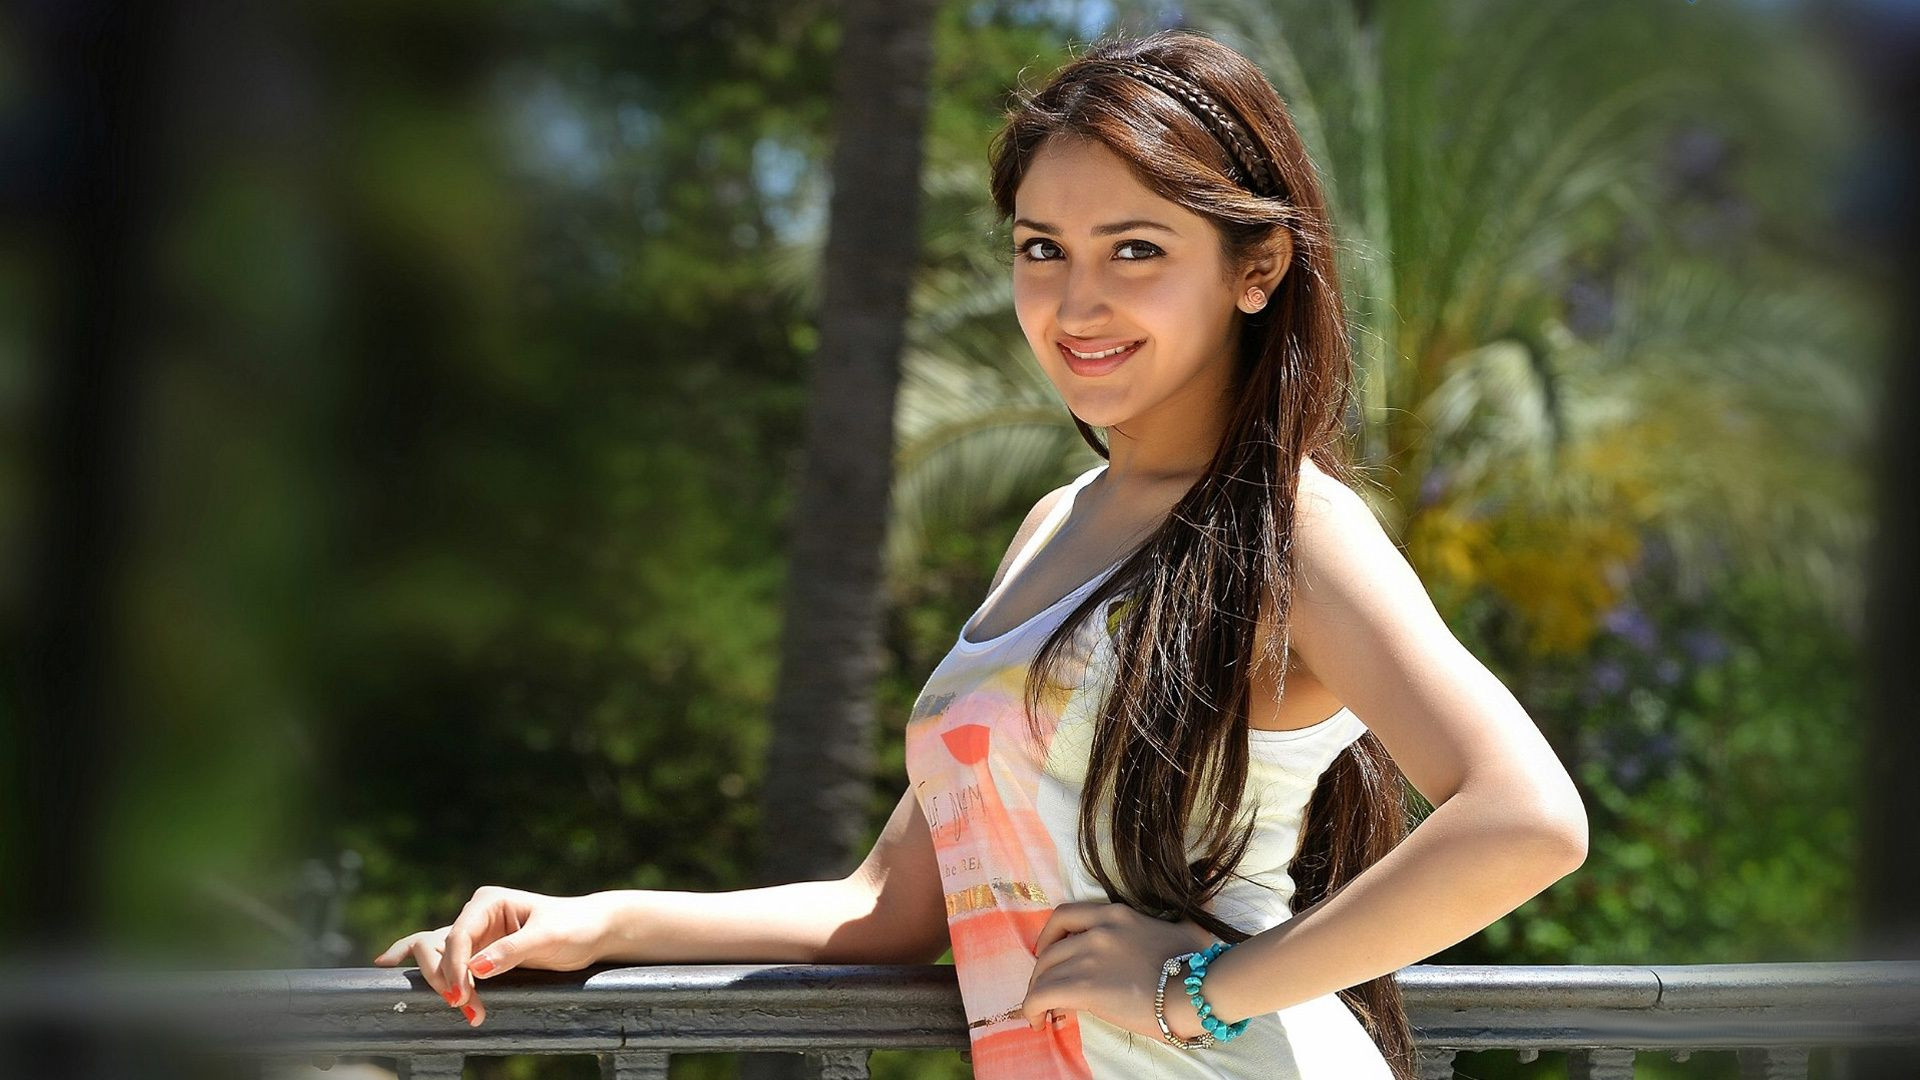 sayesha saigal wallpapers hd backgrounds images free photo download